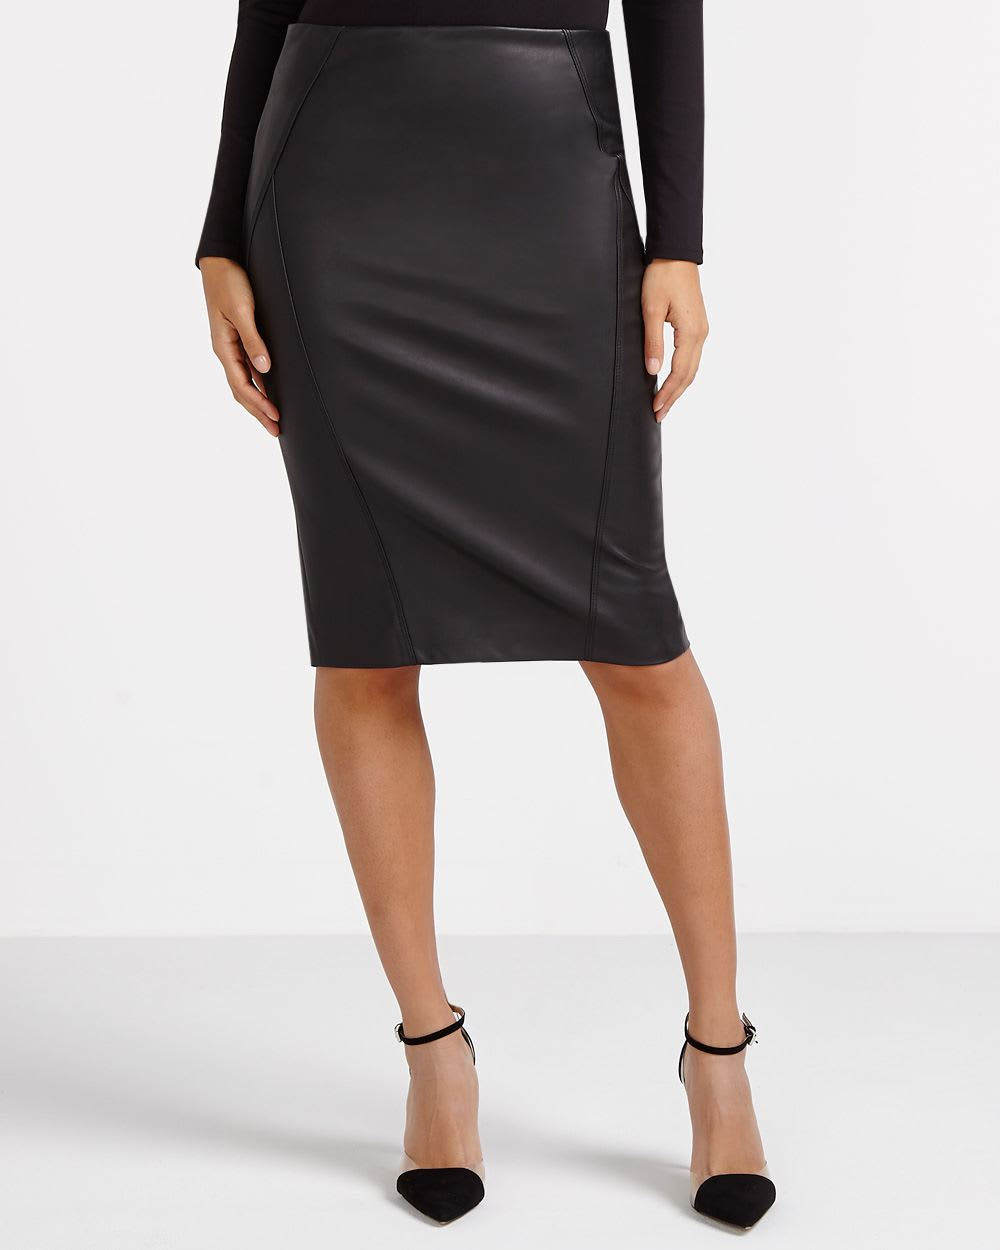 268fe3774040 The Faux Leather Skirt by Meghan Markle